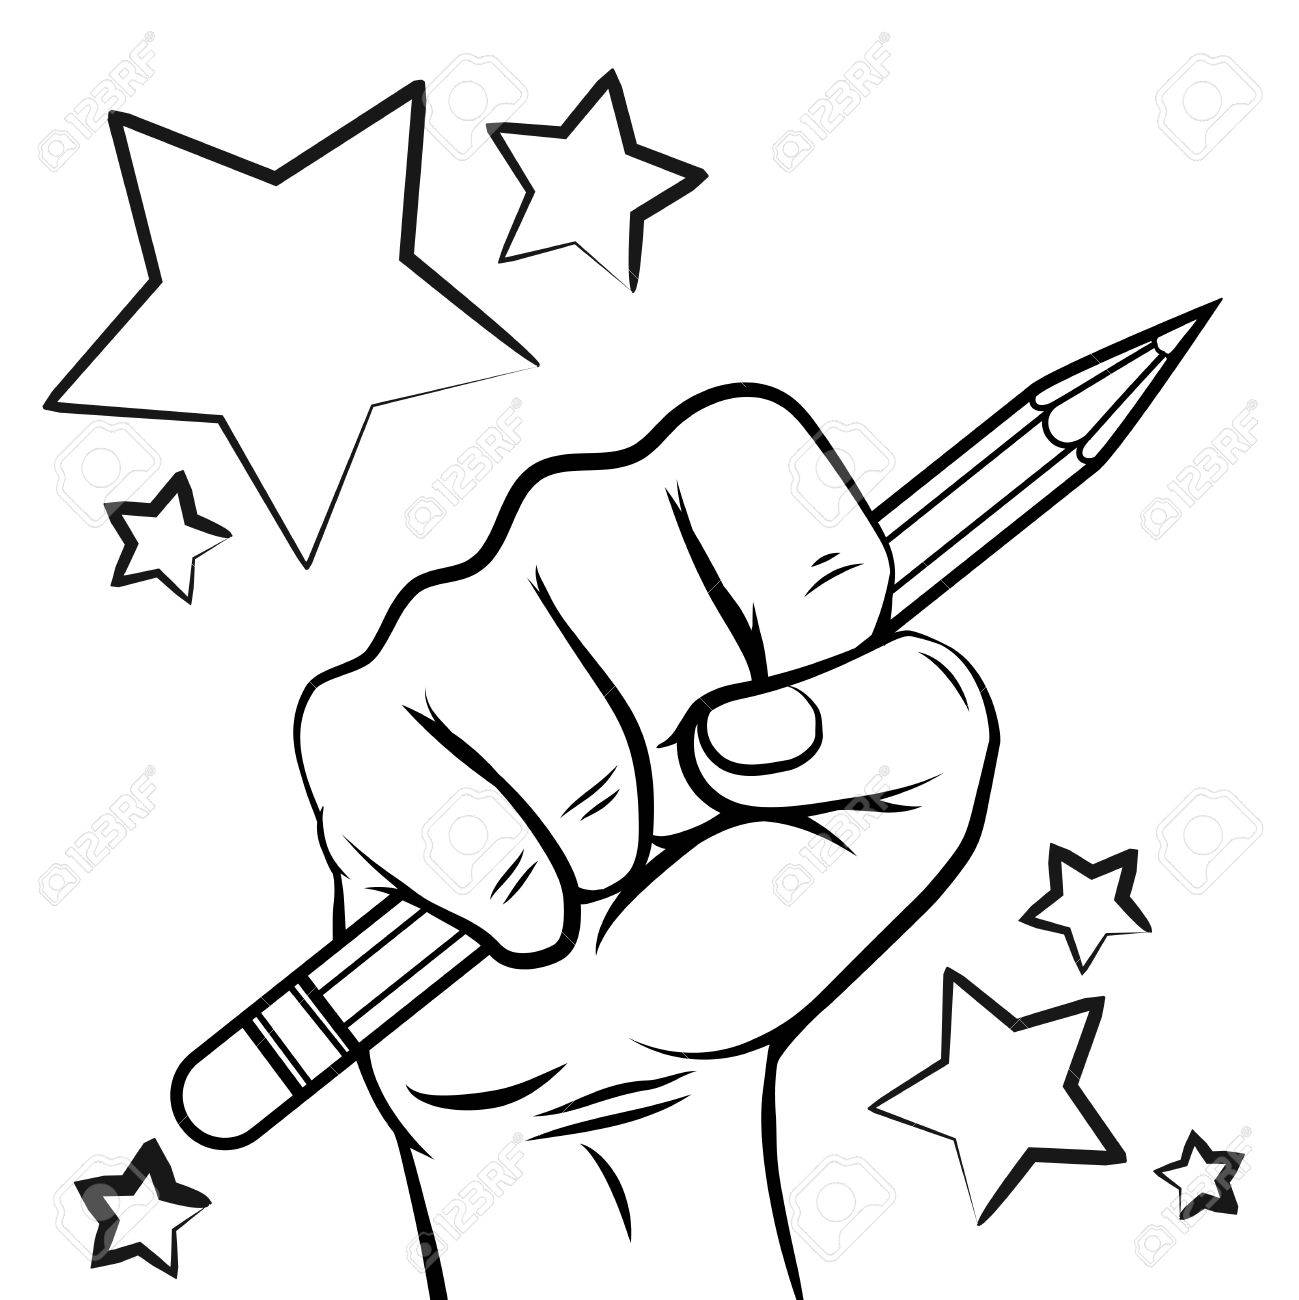 1299x1300 School Sketch With Hand Pencil And Stars Isolated On White